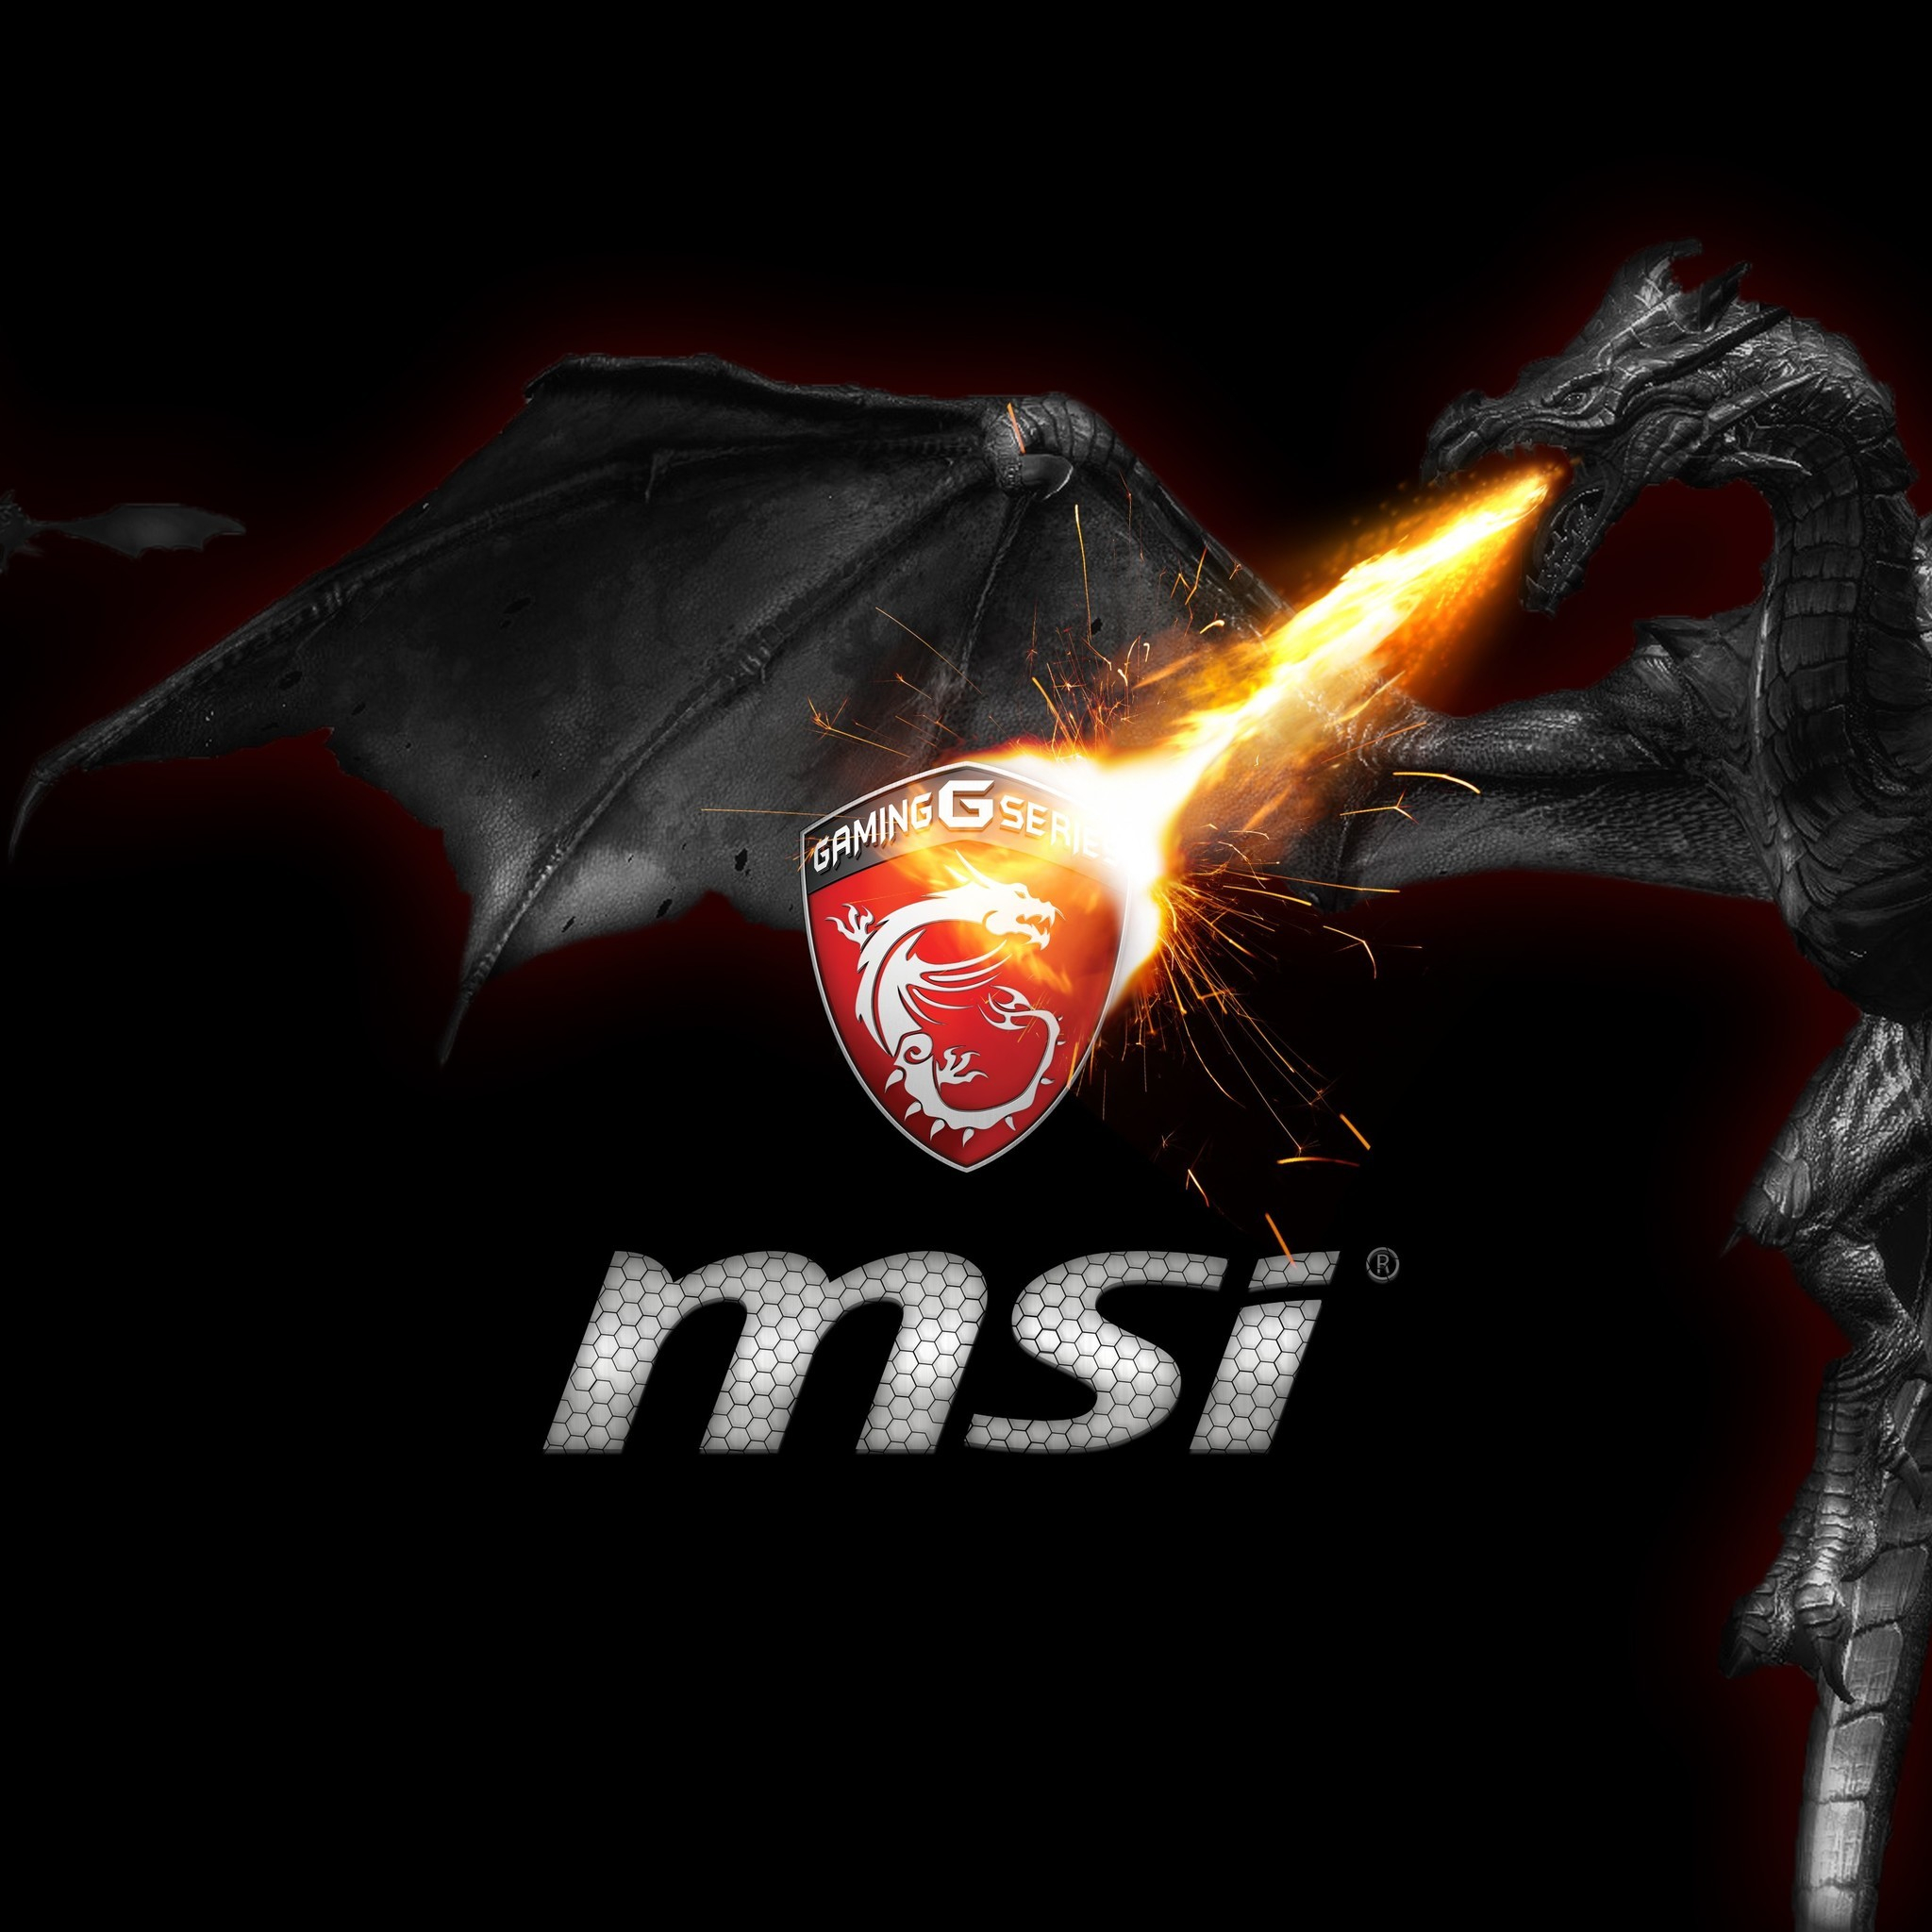 msi wallpaper 4k